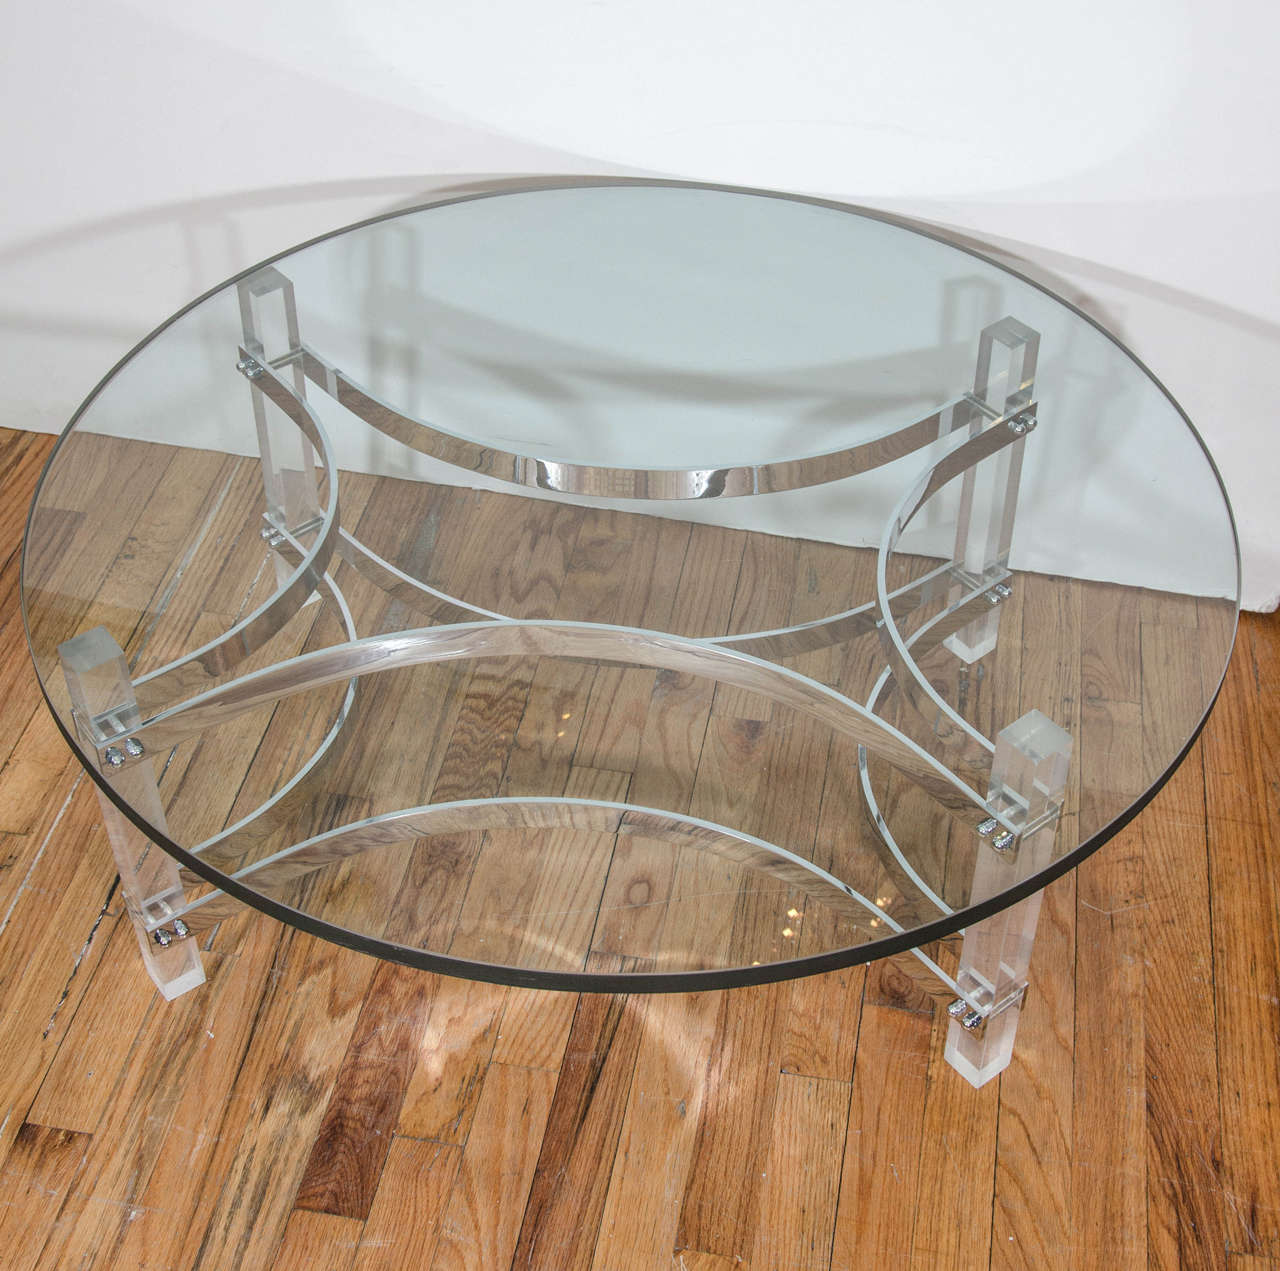 A Vintage Coffee And Tail Table Produced Circa 1970s By Charles Hollis Jones